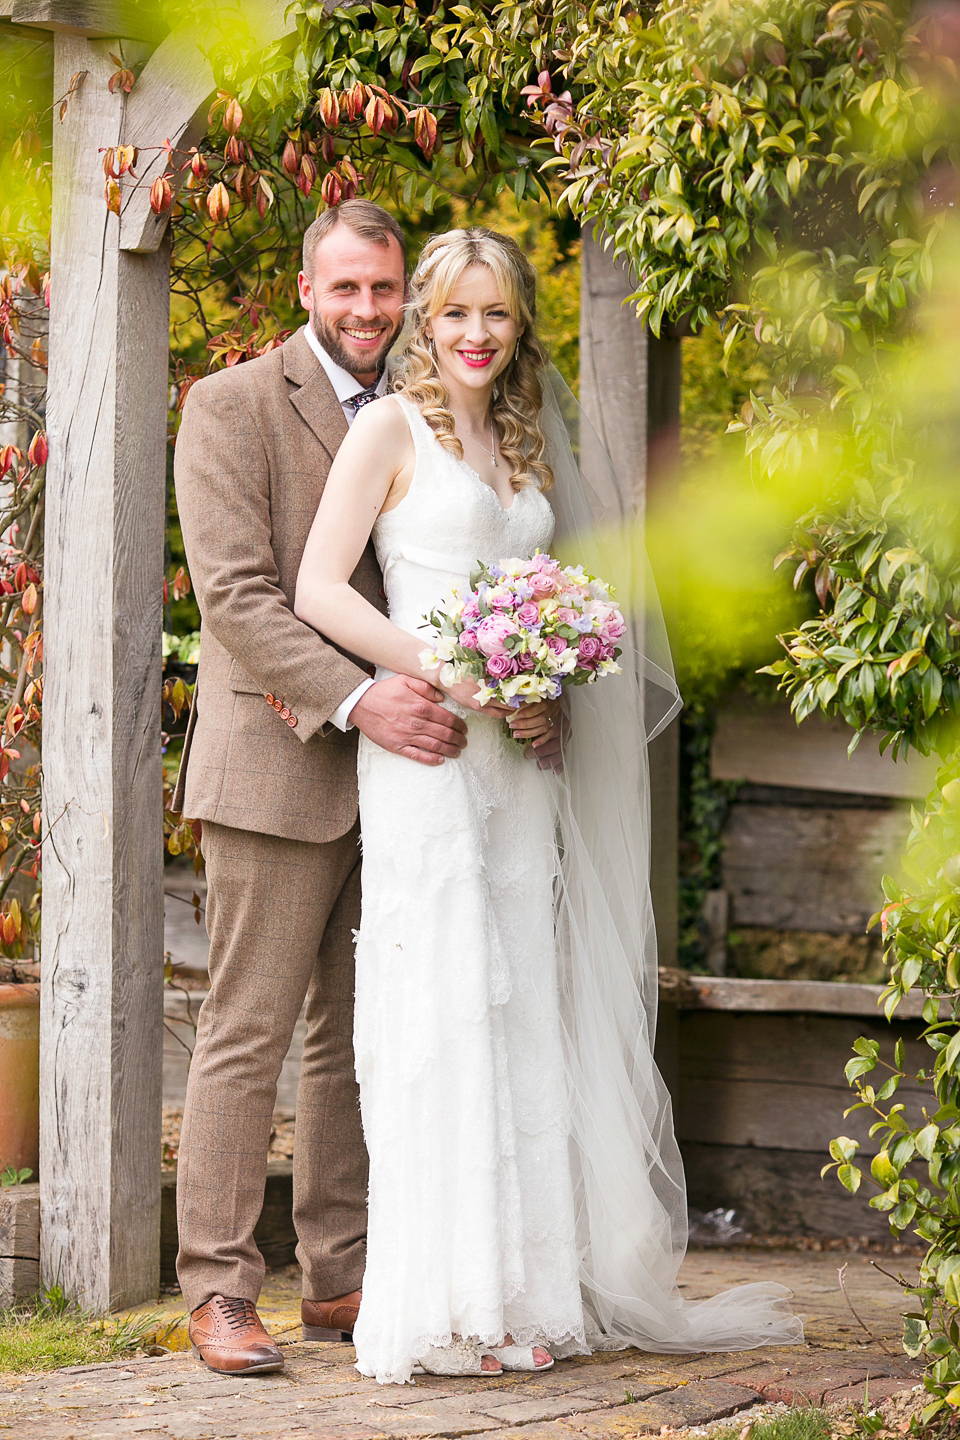 An Elegant Cymbeline Gown For A Rustic English Countryside Wedding in the Spring